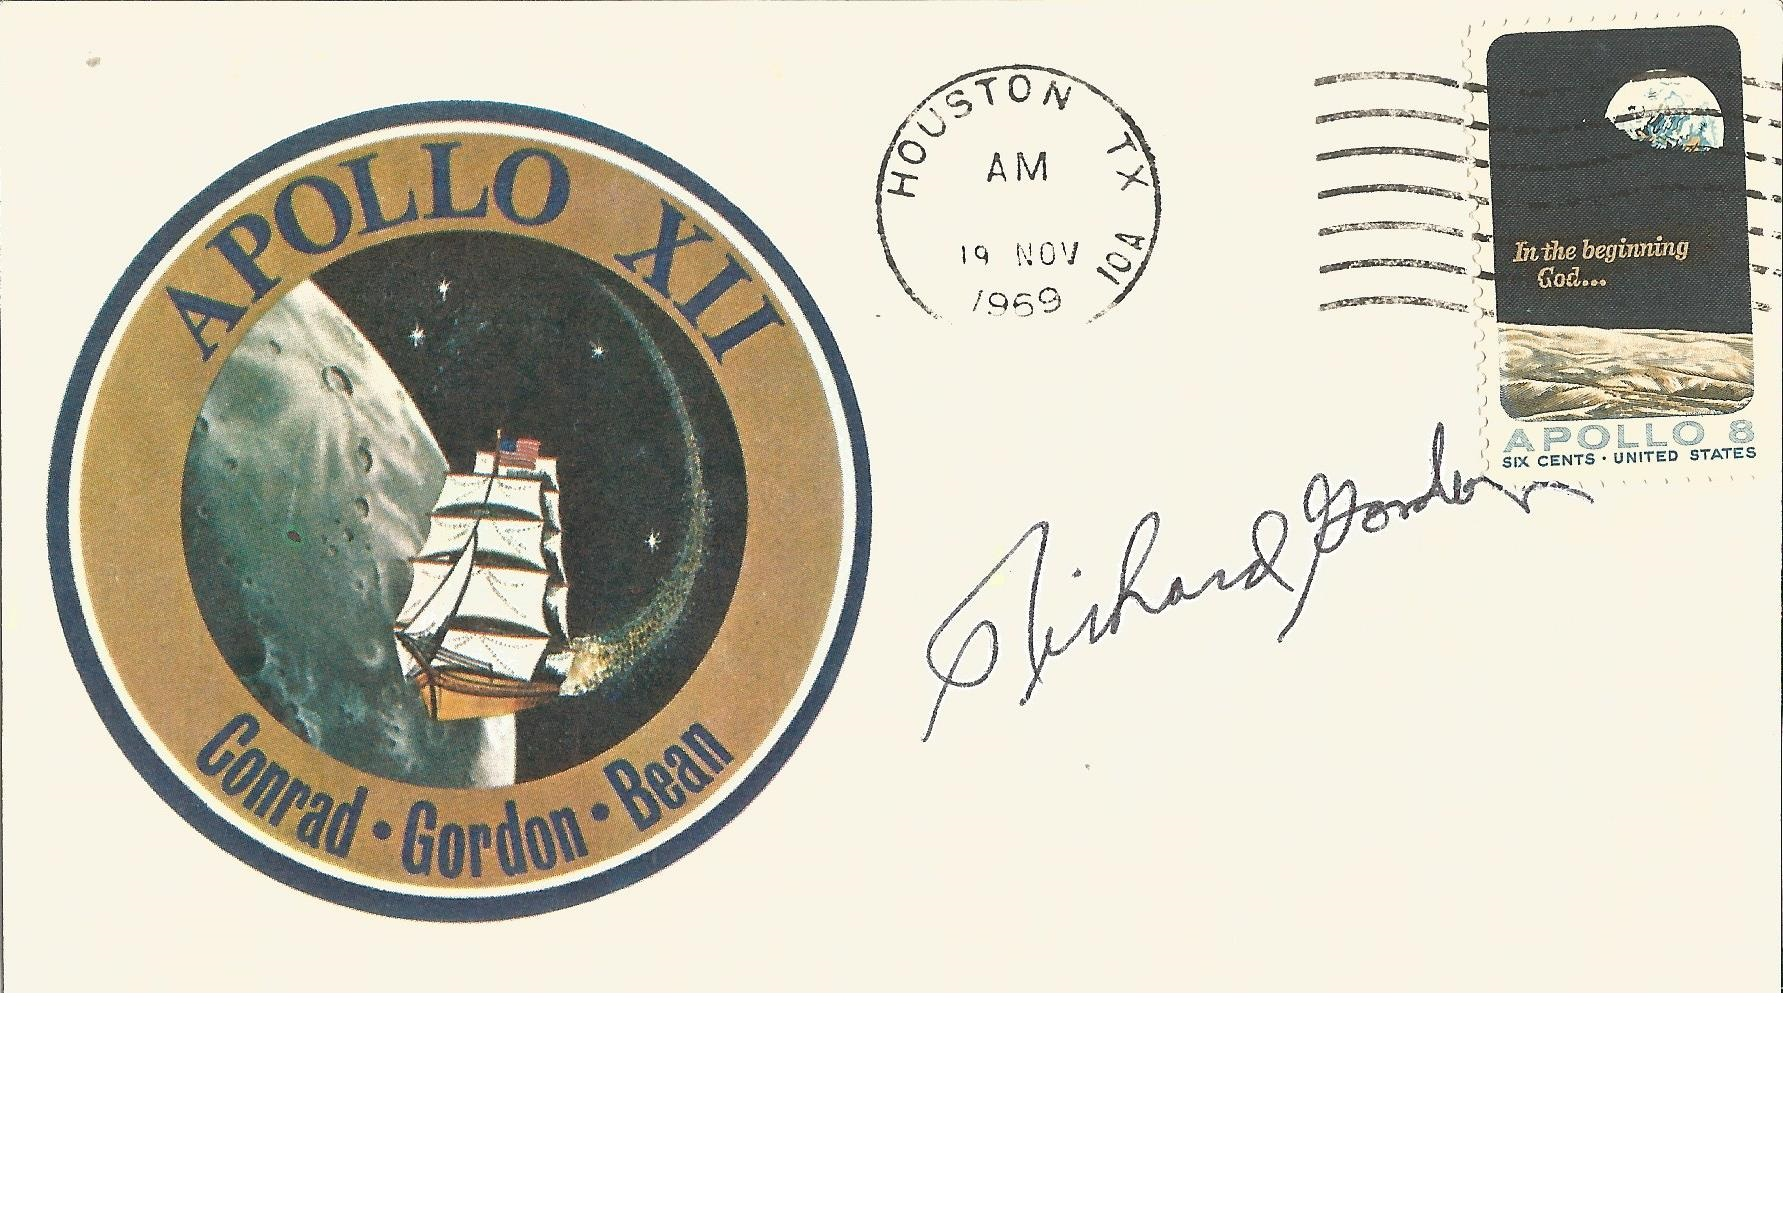 Lot 40 - Apollo XII NASA Astronaut Richard Gordon signed 1969 Mission card, with mission badge and Houston